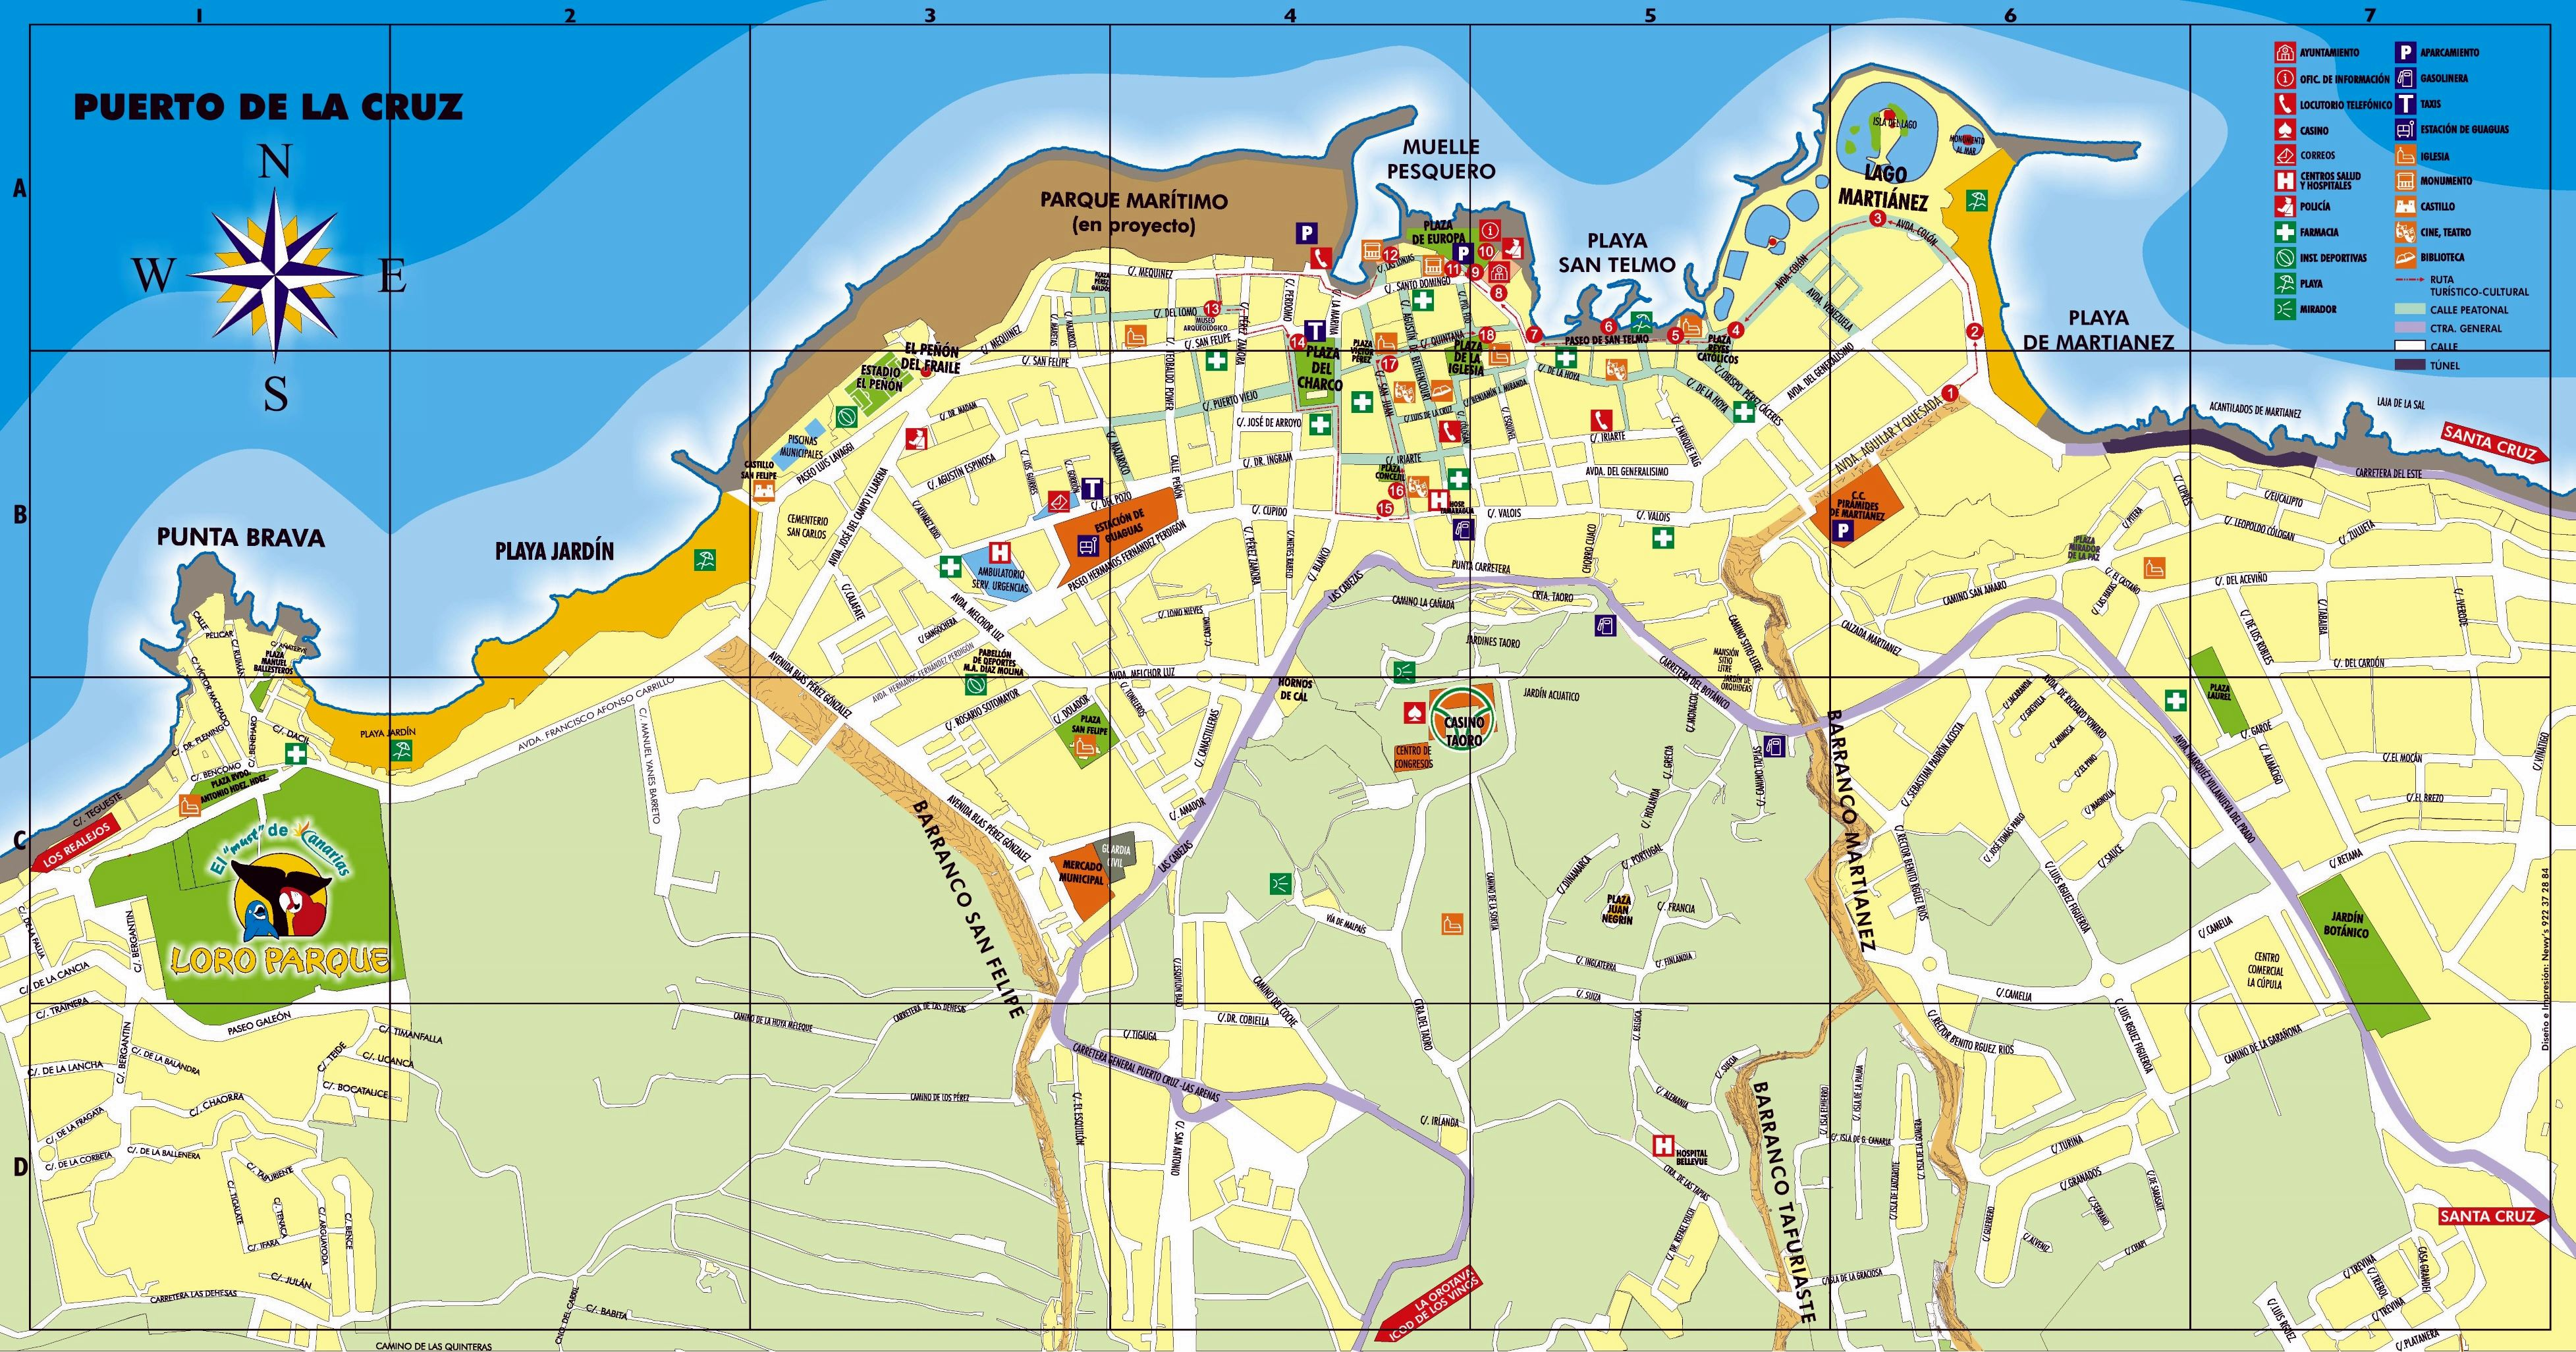 Detailed Map Of Puerto De La Cruz 2